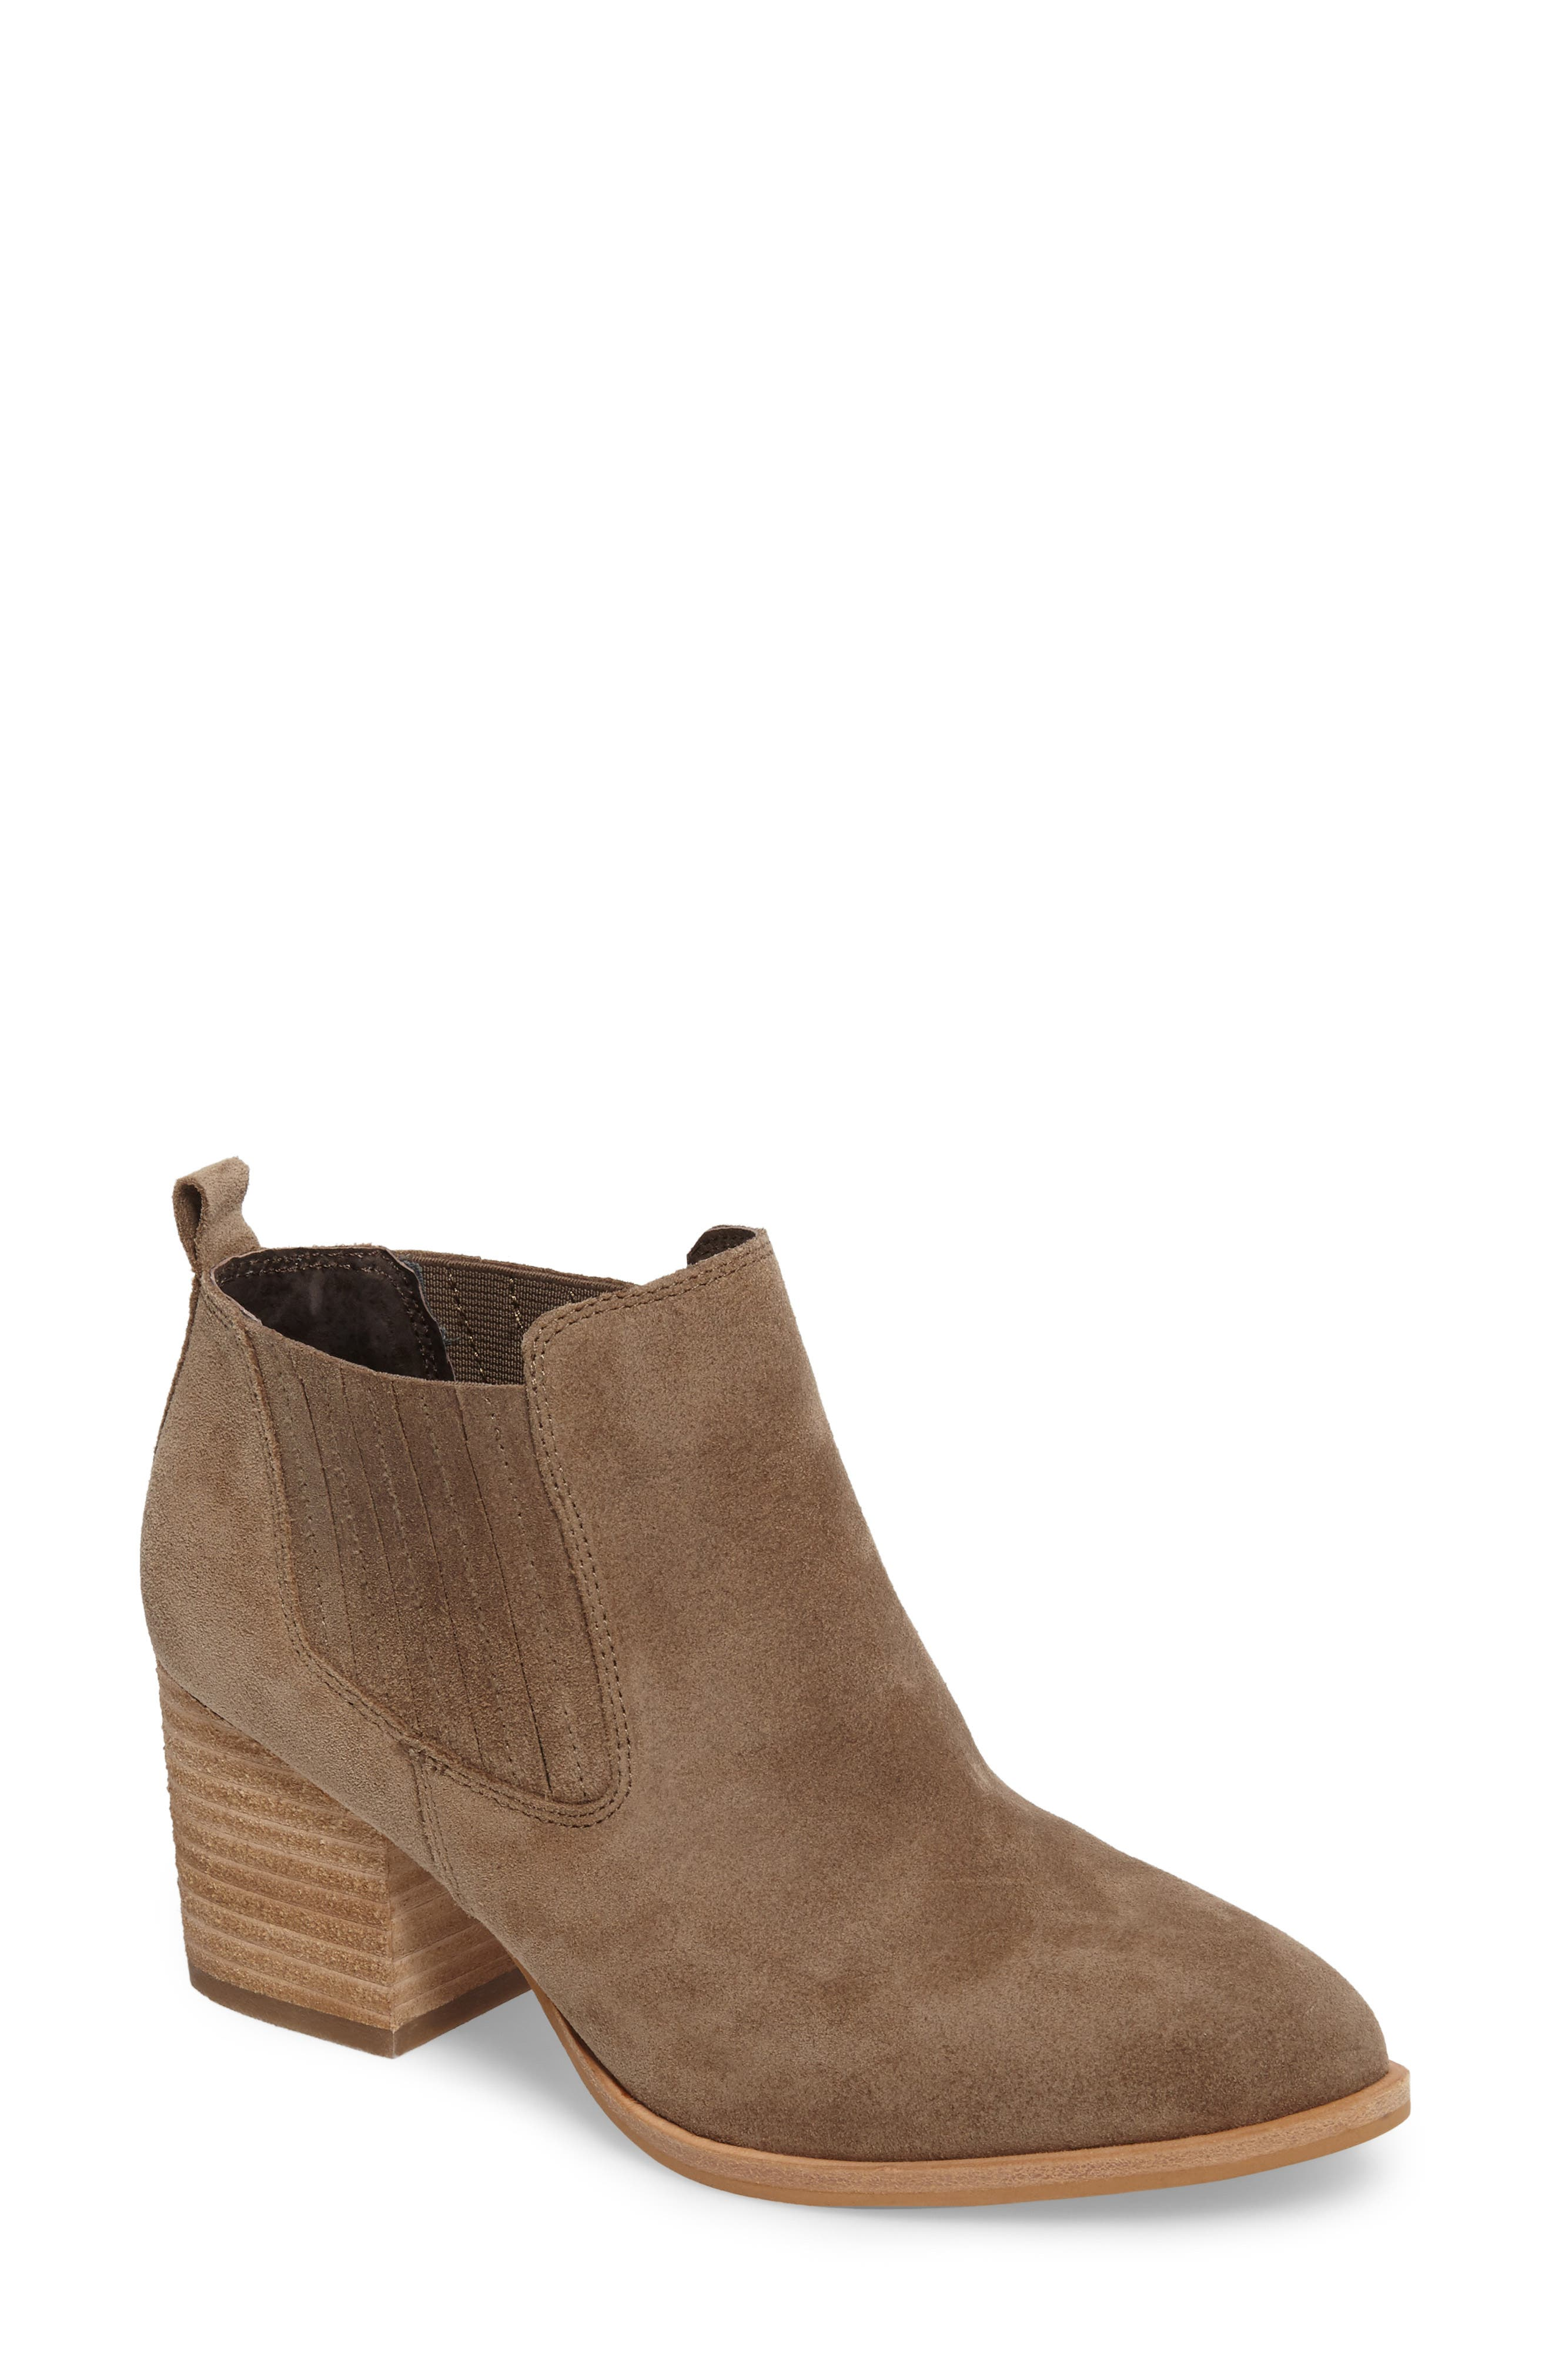 ISOLÁ Olicia Gored Bootie, Main, color, MARMOTTA LIGHT GREY SUEDE